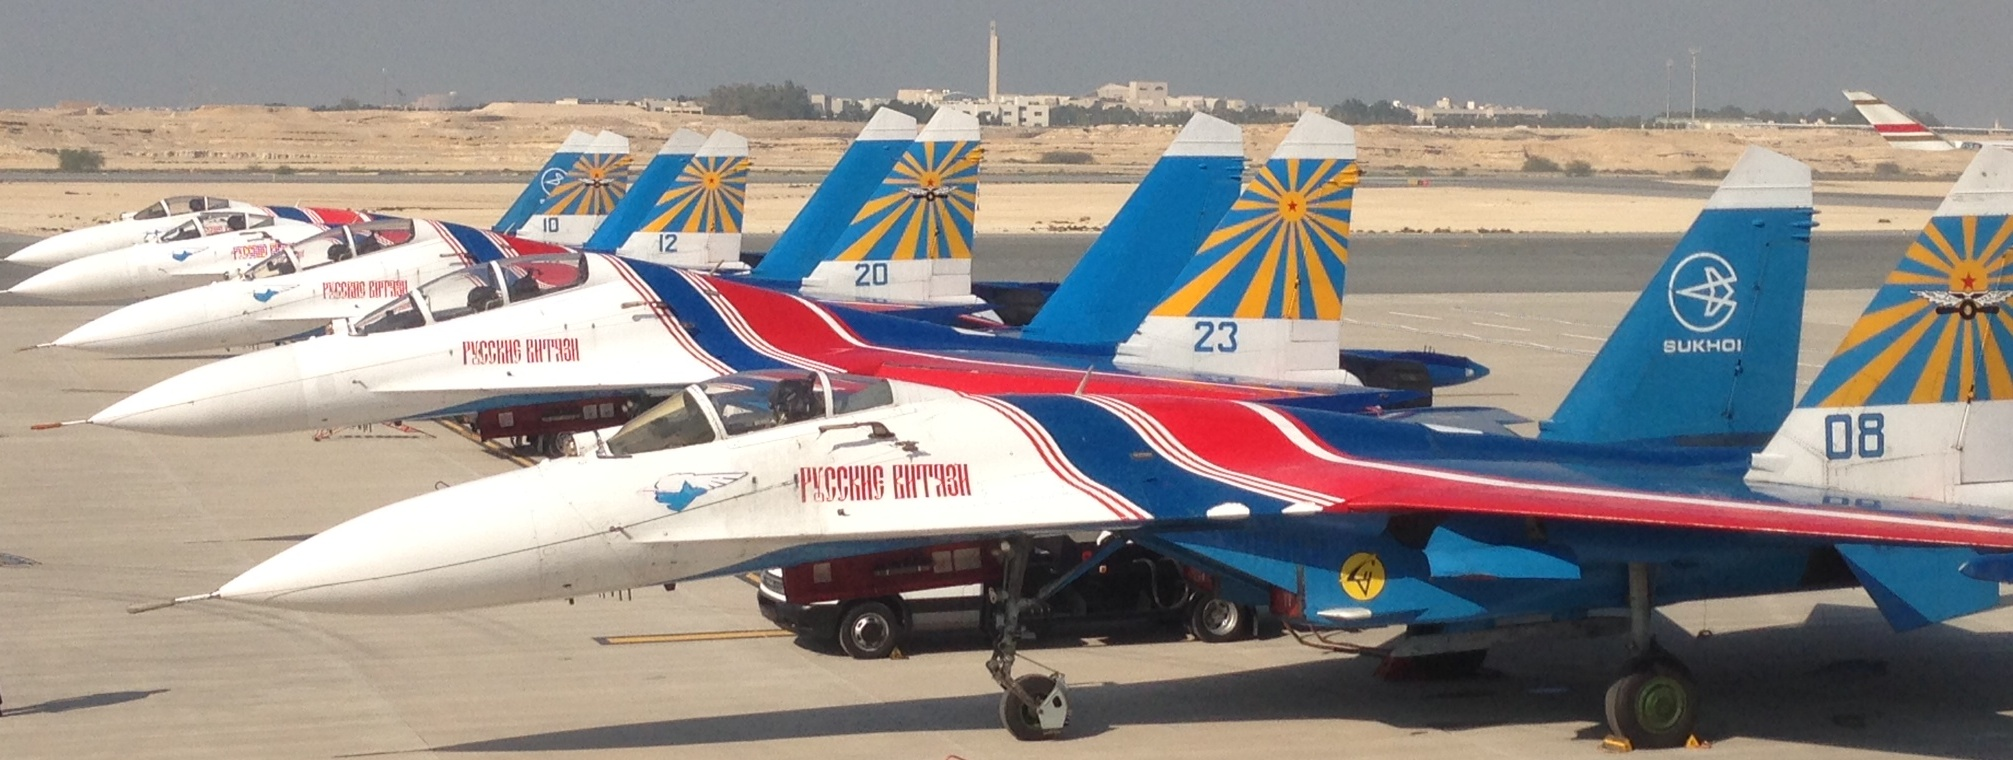 Russian Knights Show 104